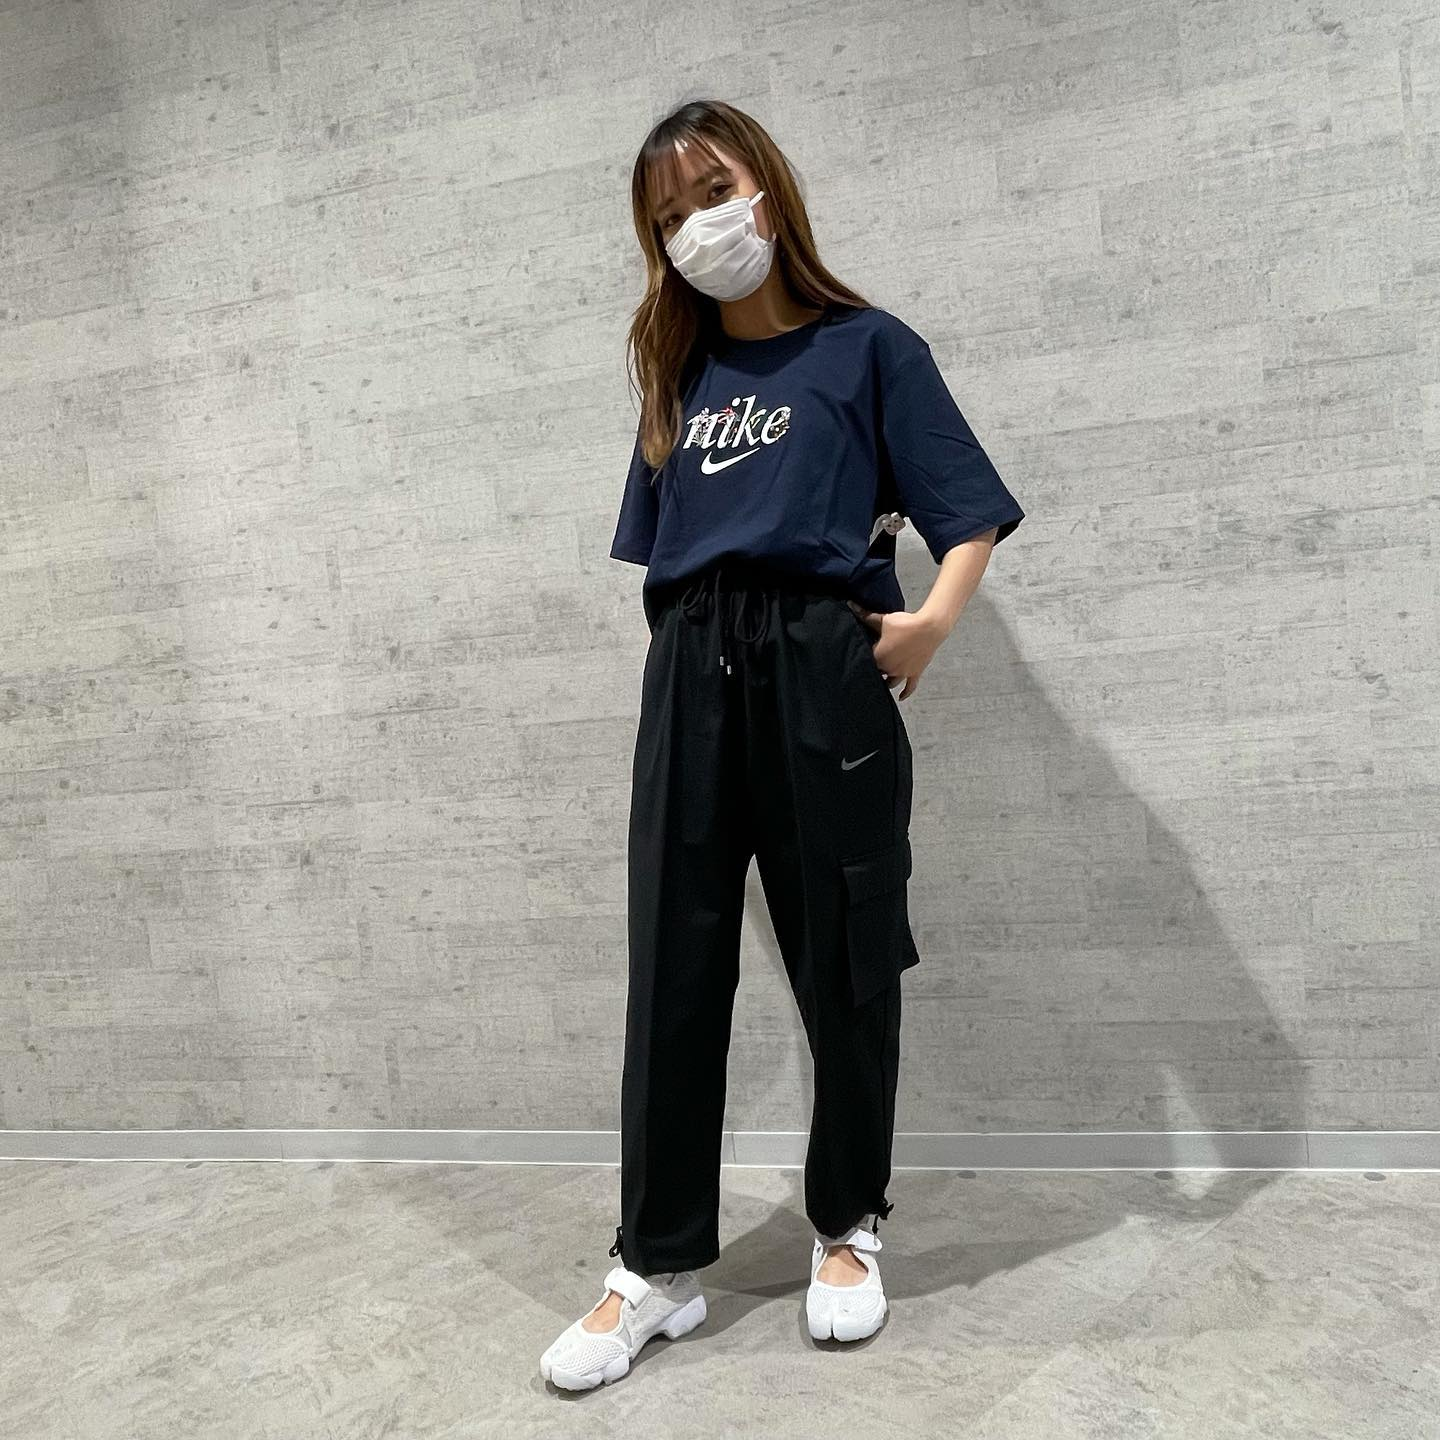 .<br /> こんにちは!<br /> ABC-MART川崎DICE店です!<br /> .<br /> 本日はNIKEからNEWアイテムのご紹介です!<br /> .<br /> tops: AS W NSW TEE<br /> DD1457 / 451OBSIDN<br /> ¥3.850(tax in)<br /> .<br /> pants: AS W NSW ICN <br /> CZ9331 / 010BLK/DKSKGY <br /> ¥9.900(tax in)<br /> .<br /> shoes: W AIR RIFT BR<br /> 848386 /001BLK/CGRY <br /> ¥10.450(tax in)<br /> .<br /> サマーアイテム続々と入荷しております!<br /> 是非店頭でお試し下さい!<br /> スタッフ一同心より<br /> ご来店お待ちしております♂️♀️<br /> .